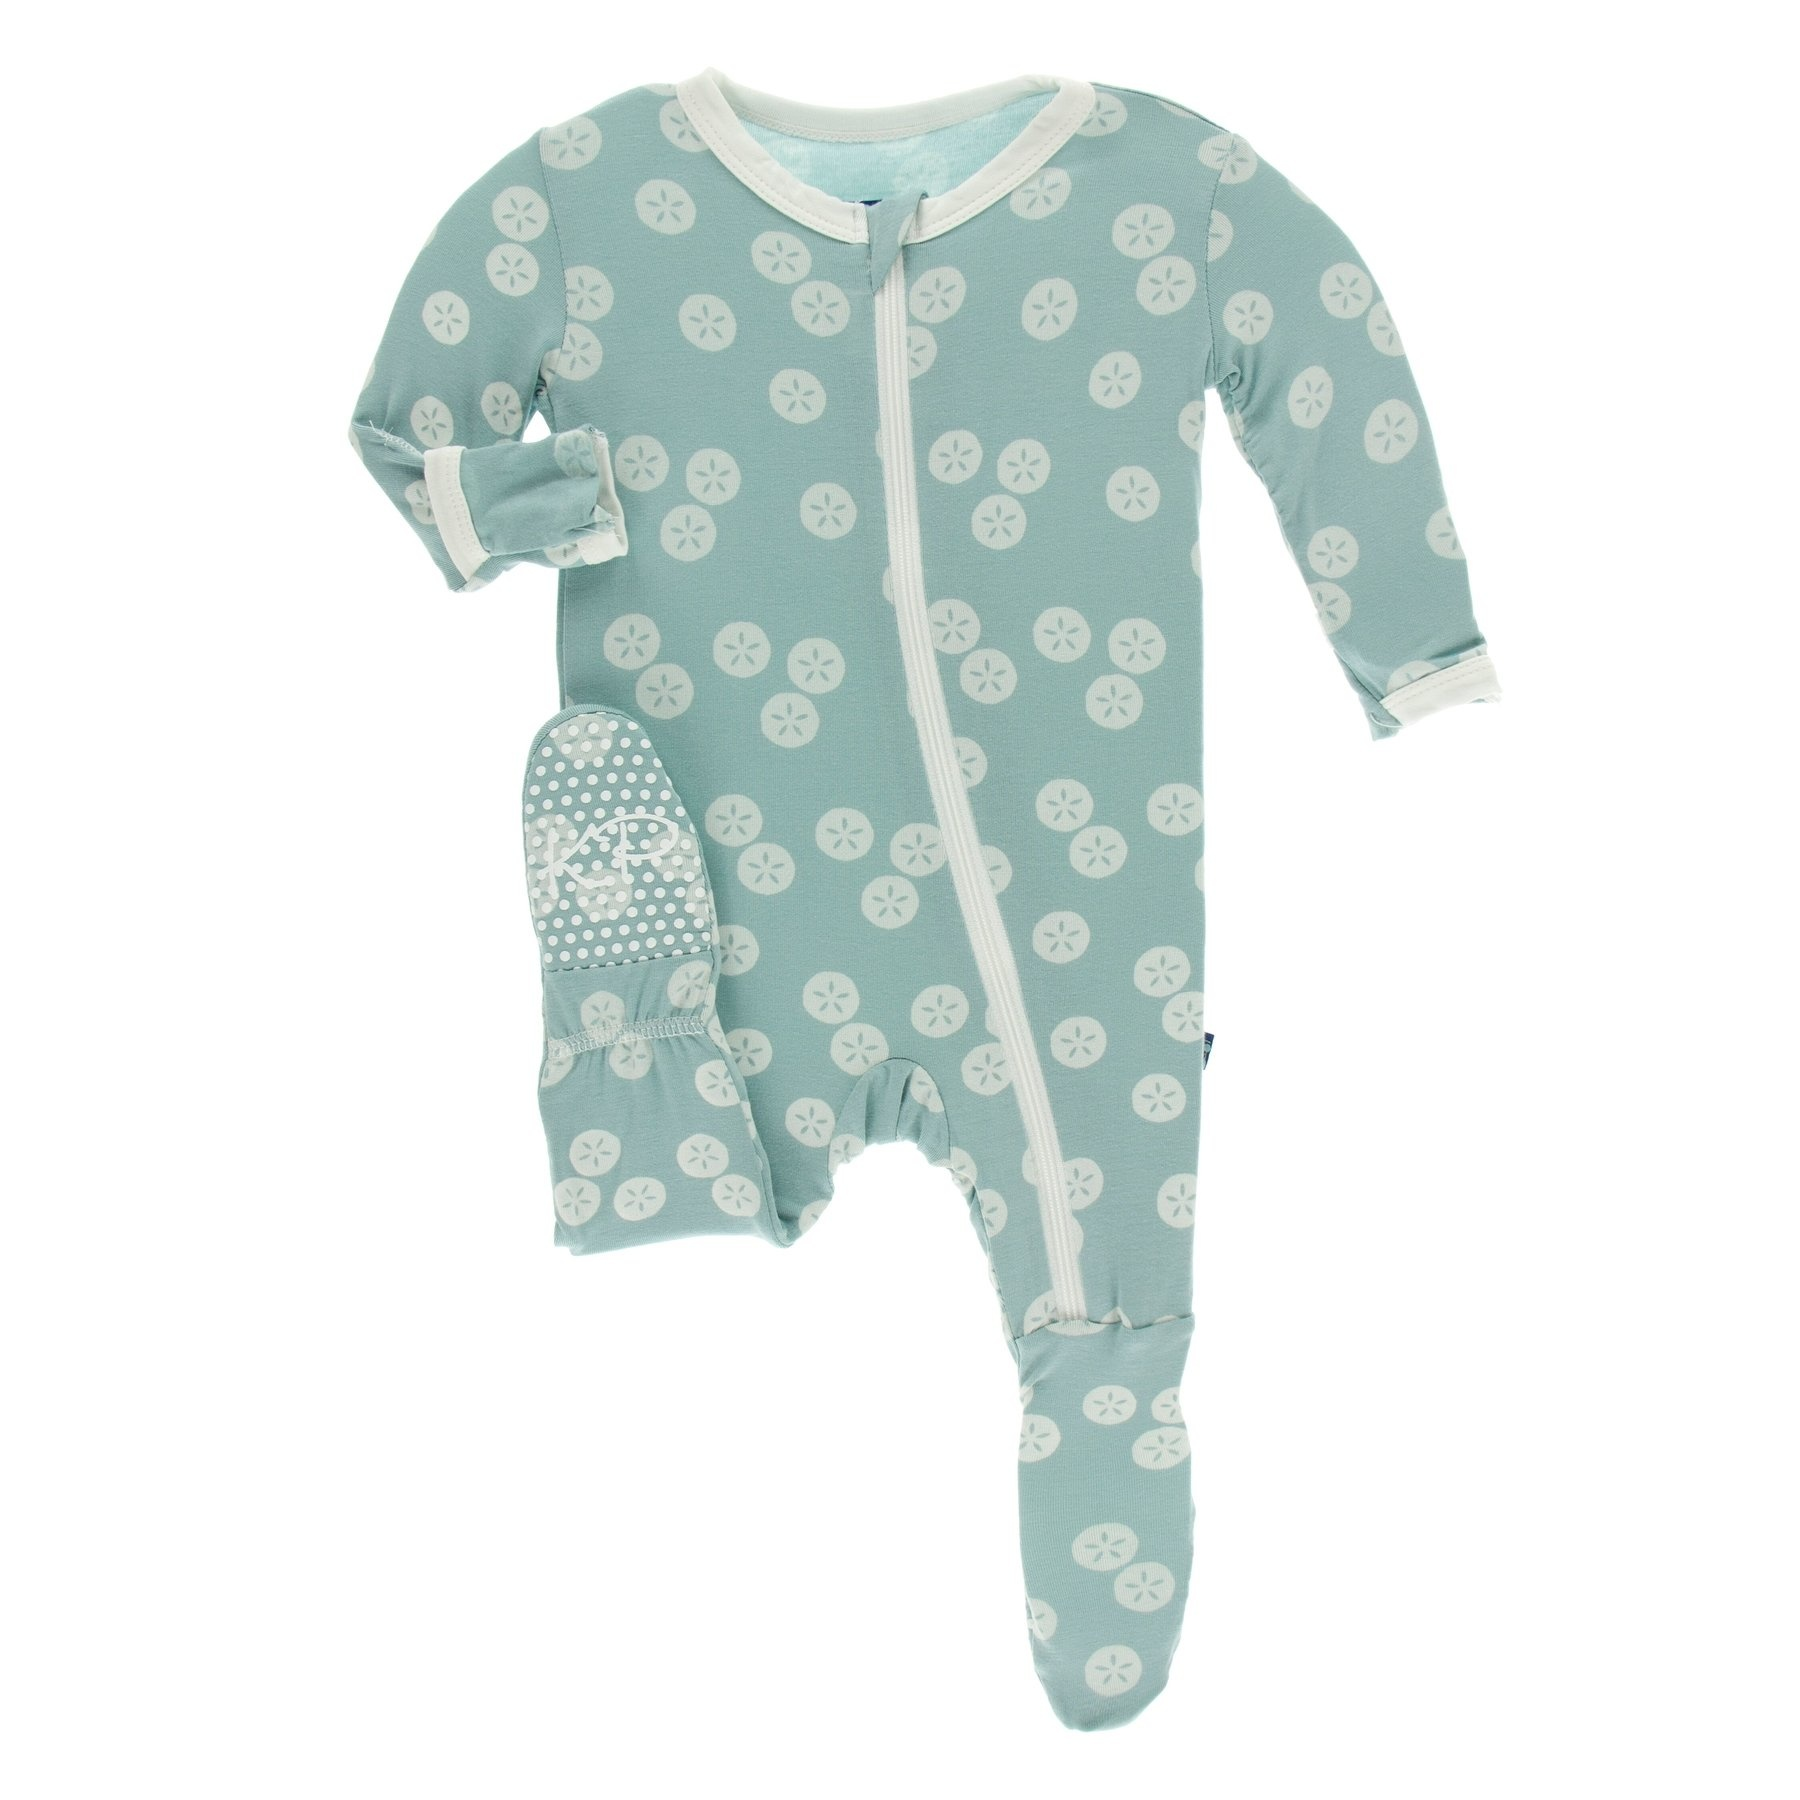 KicKee Pants KicKee Pants Footie with Zipper - Jade Sand Dollar